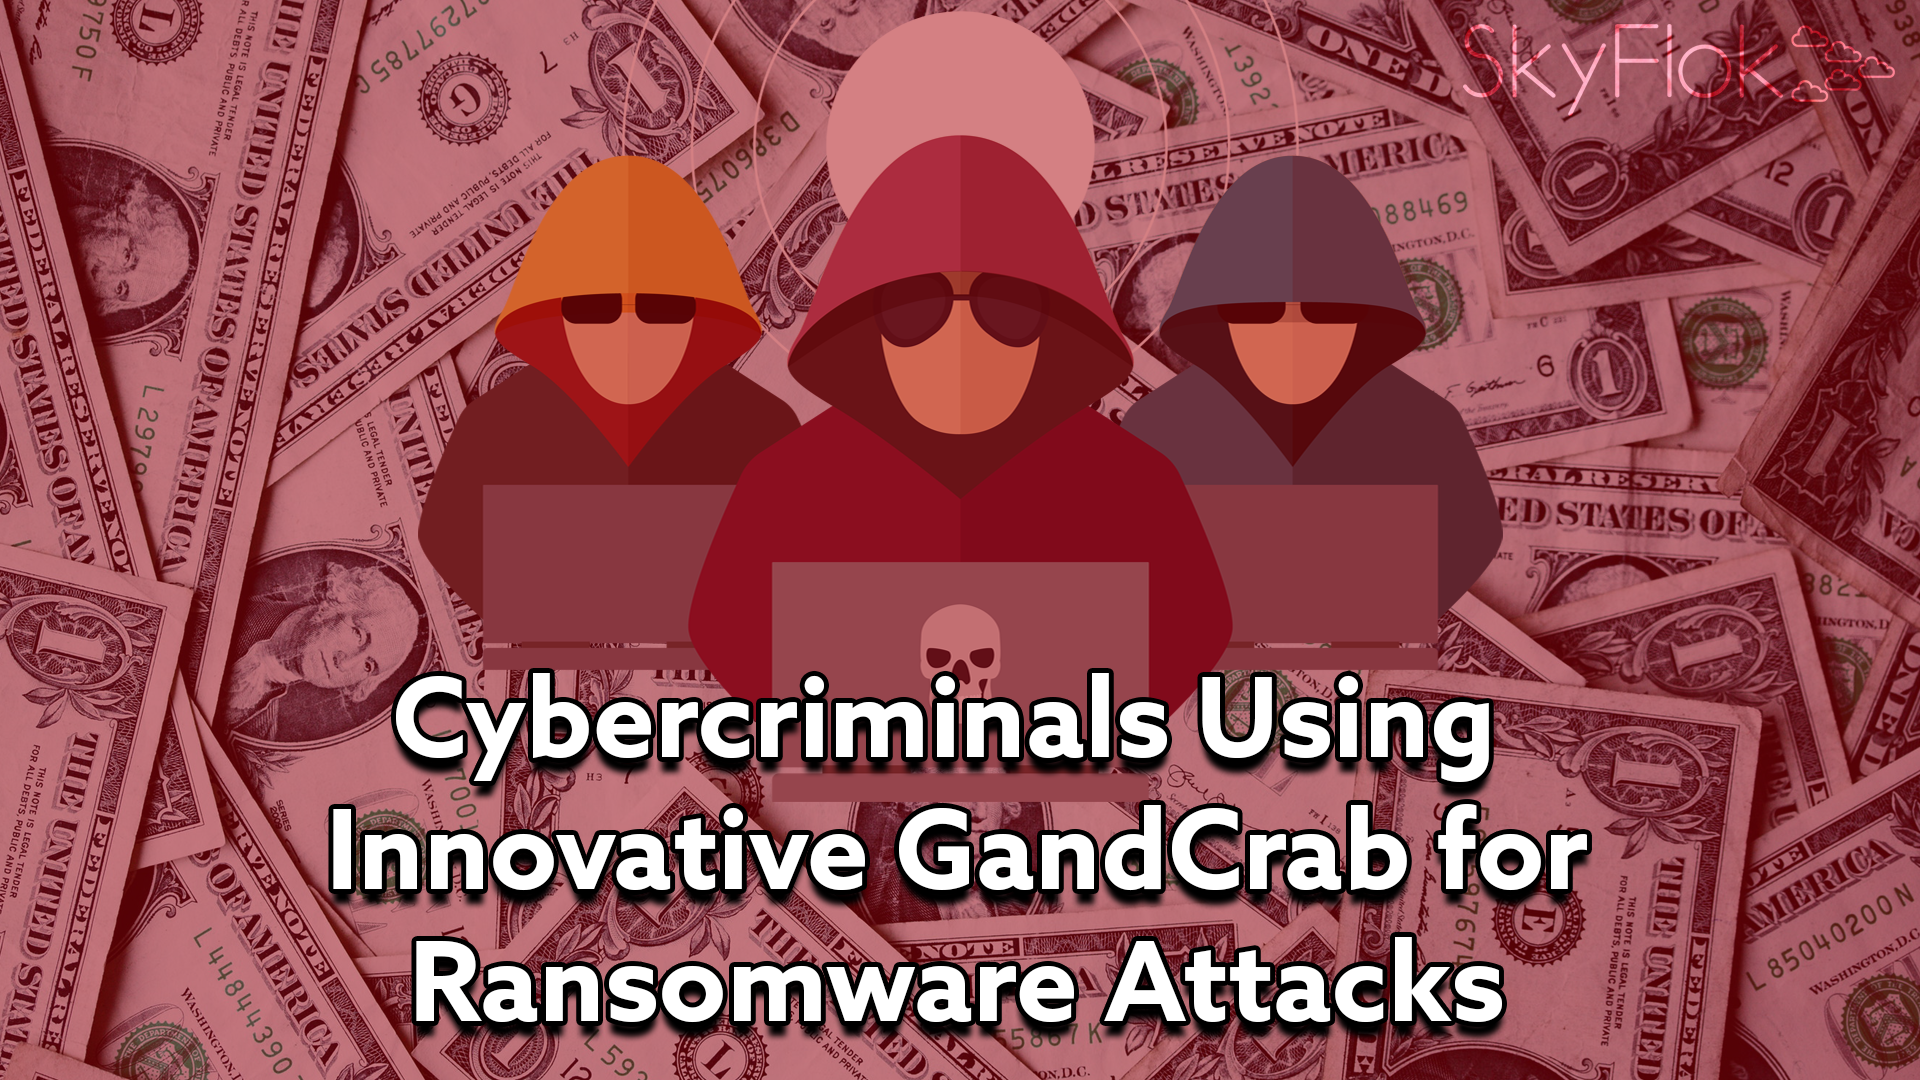 Cybercriminals Using Innovative GrandCrab for Ransomware Attacks